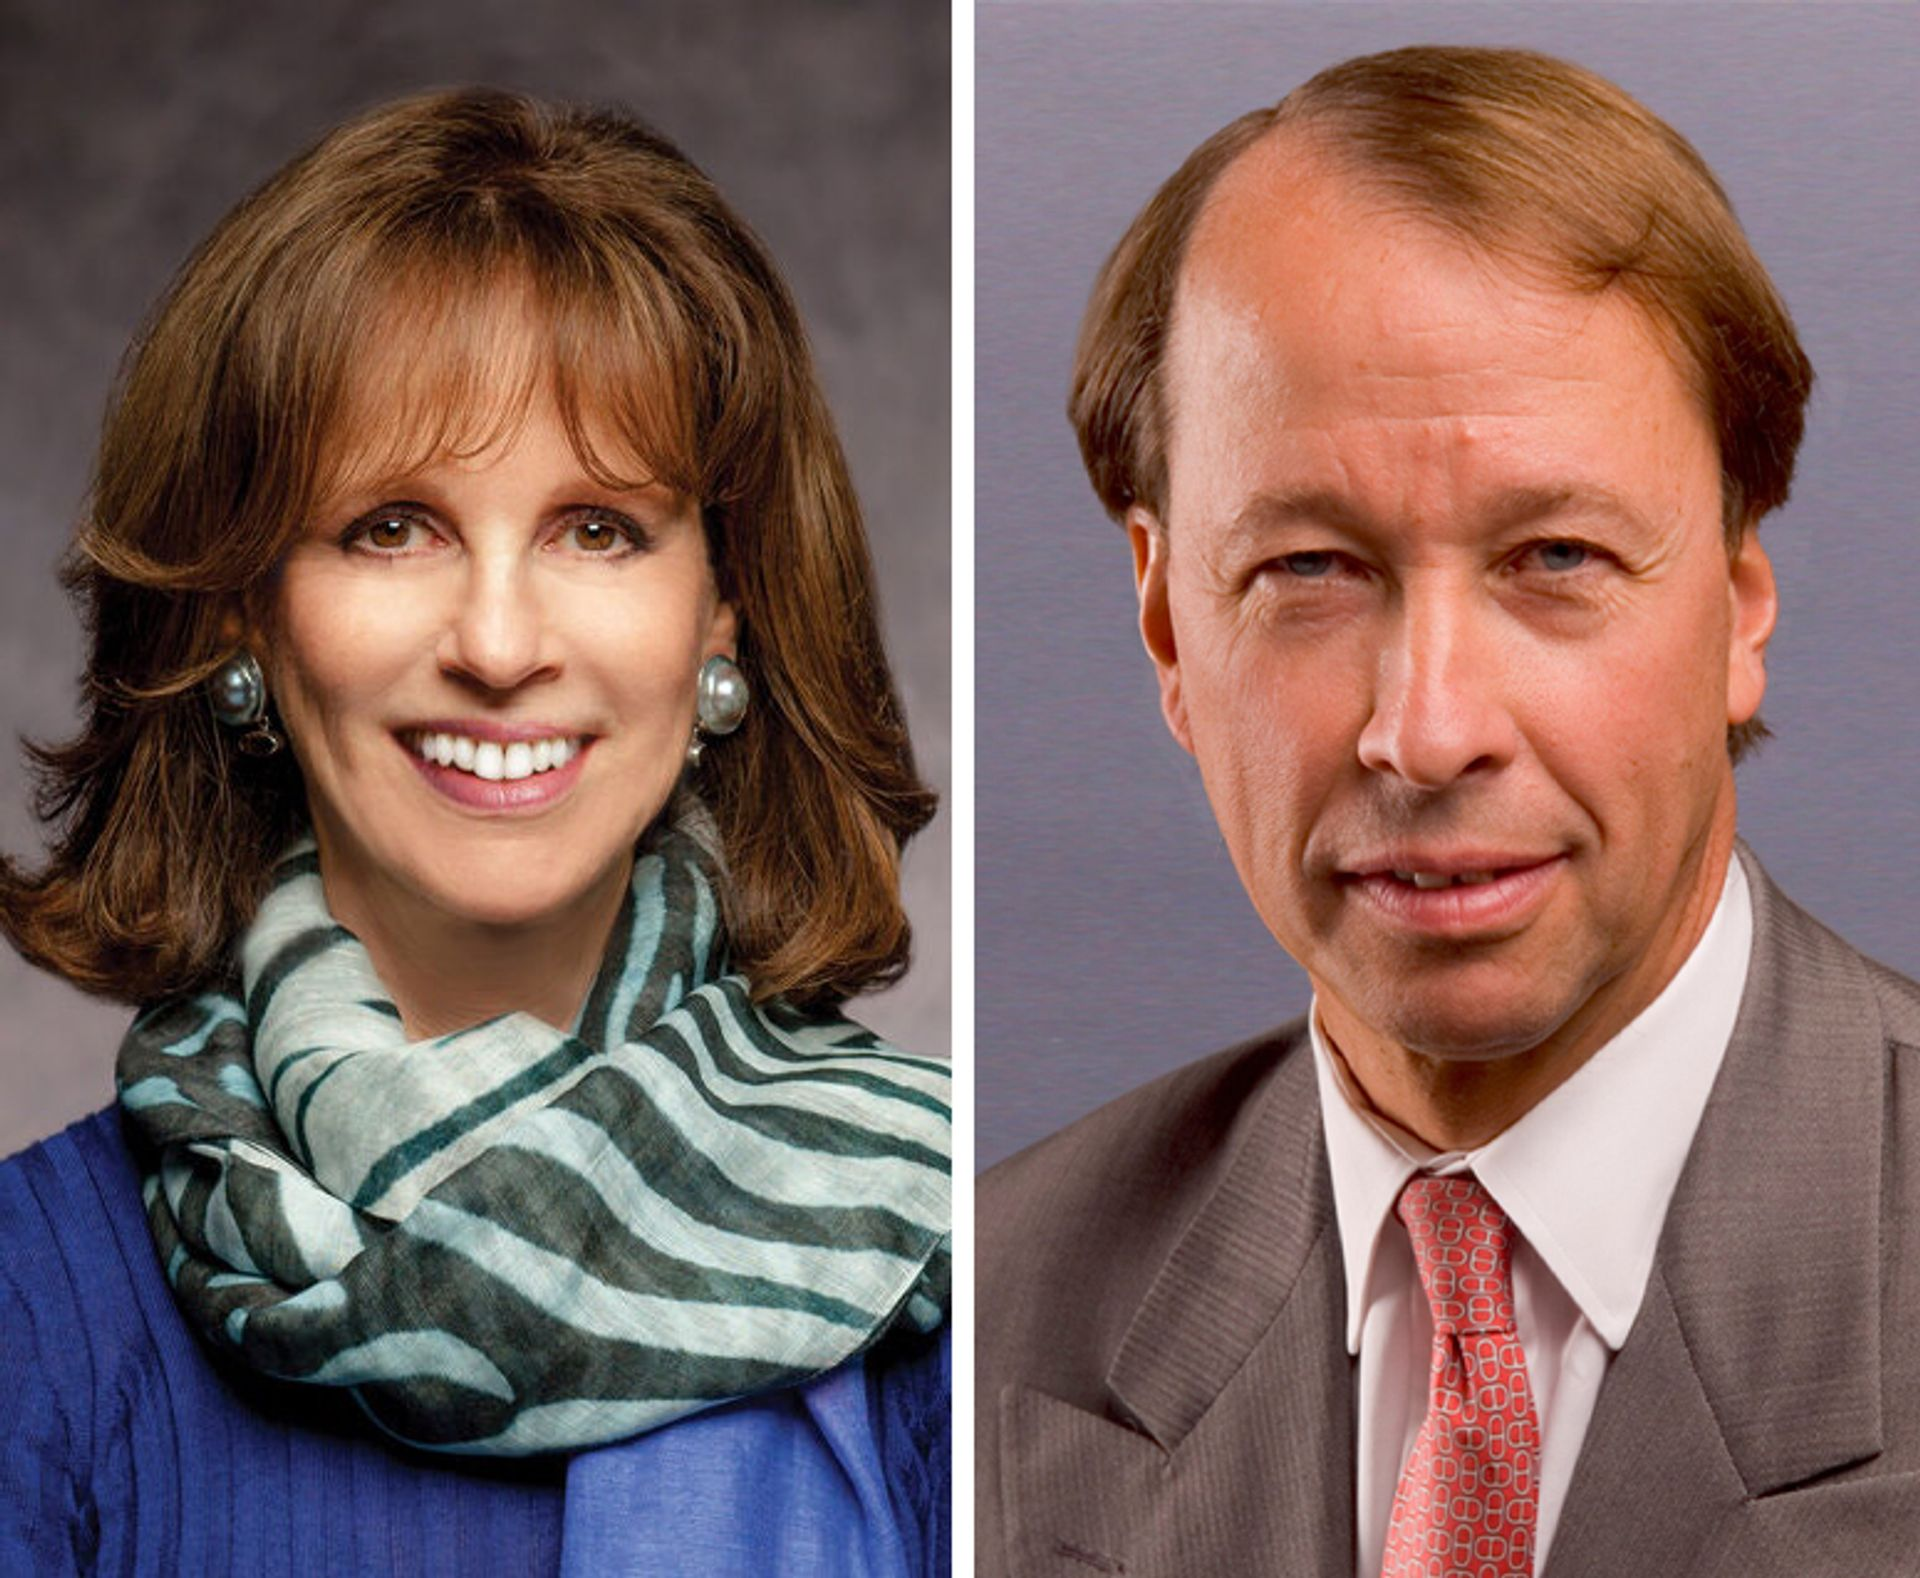 Candace K. Beinecke and Hamilton E. James will be co-chairs of the board The Metropolitan Museum of Art